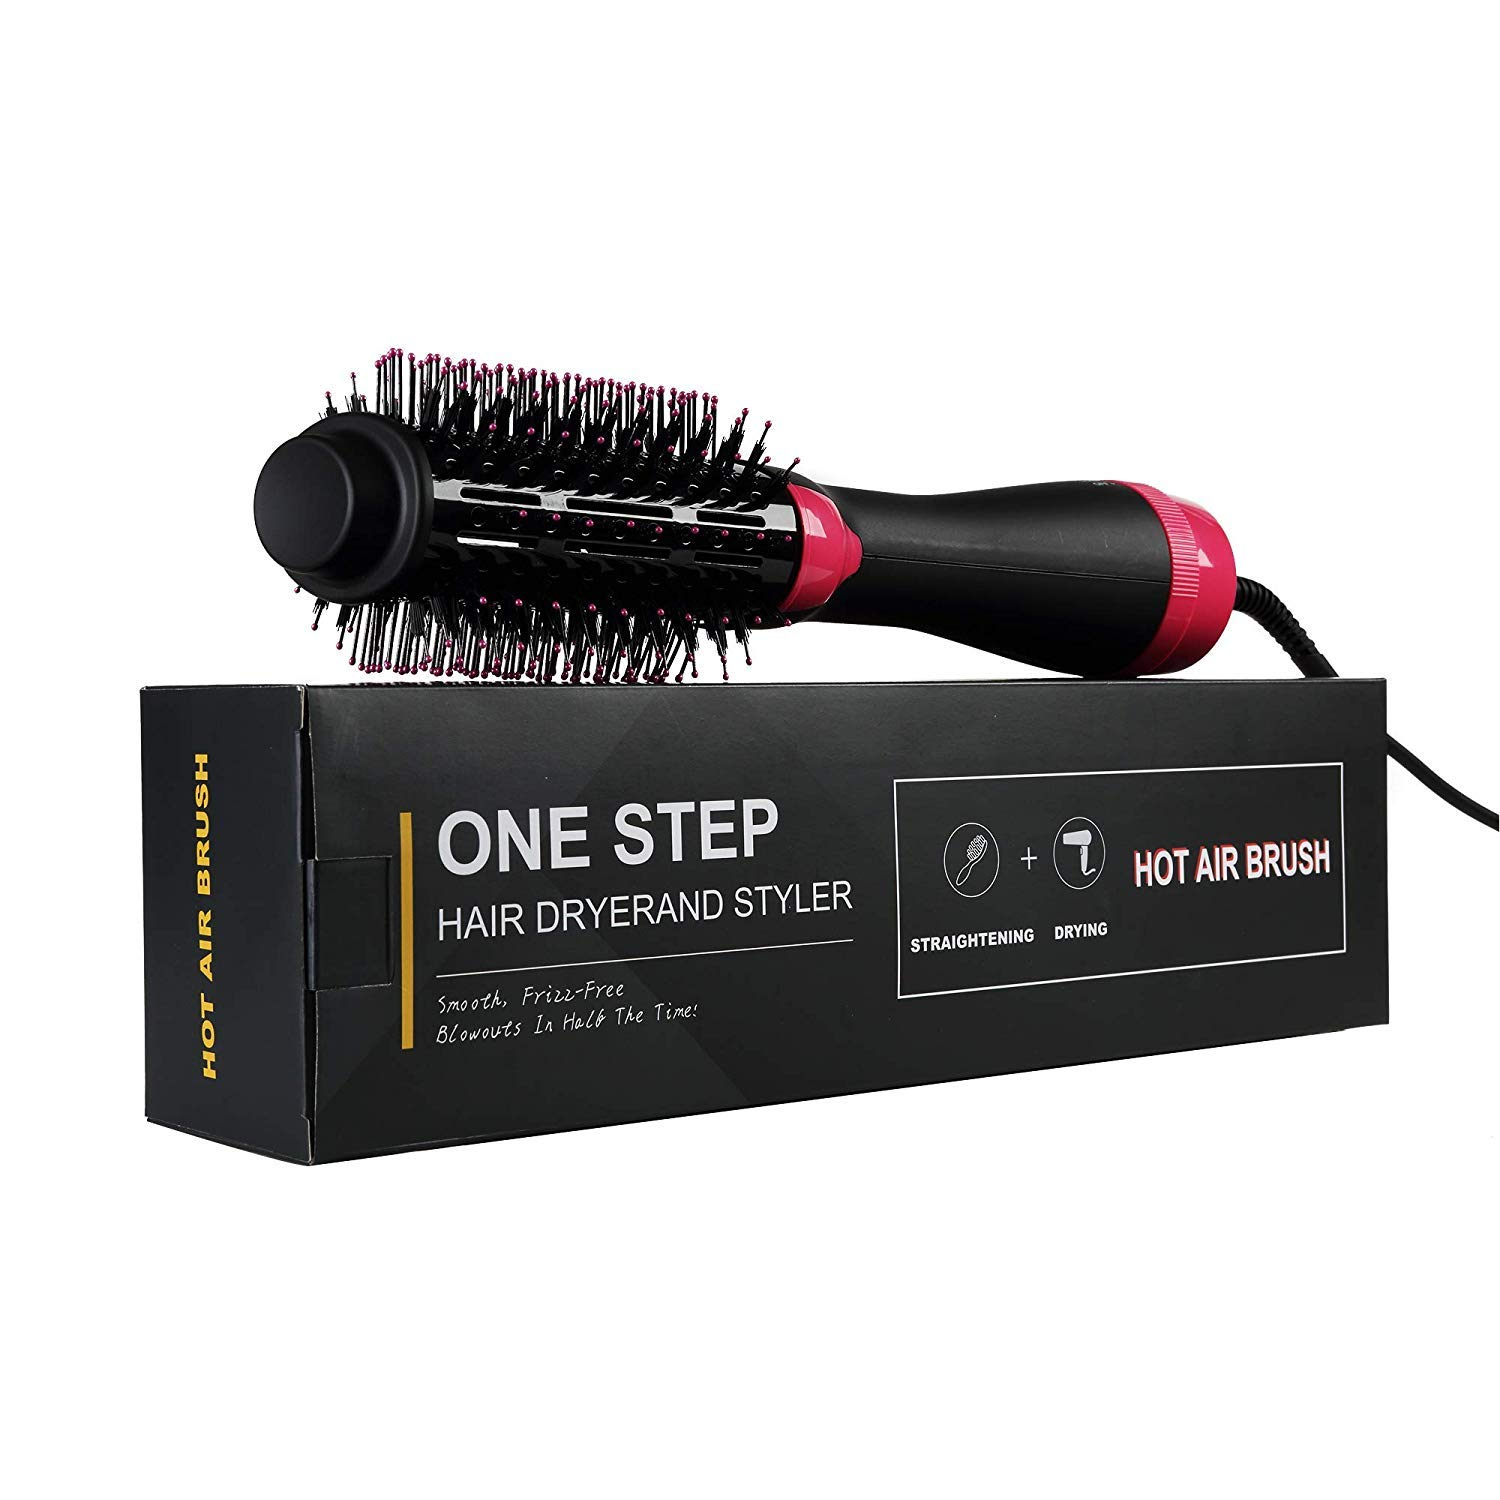 Hot Air Brush - One Step Hair Dryer & Volumizer, 3 in 1 Styling Brush Styler, Ceramic Electric Blow Dryer, Negative Ion Hair Straightener Brush, Curly Hair Comb with Anti-Scald Feature